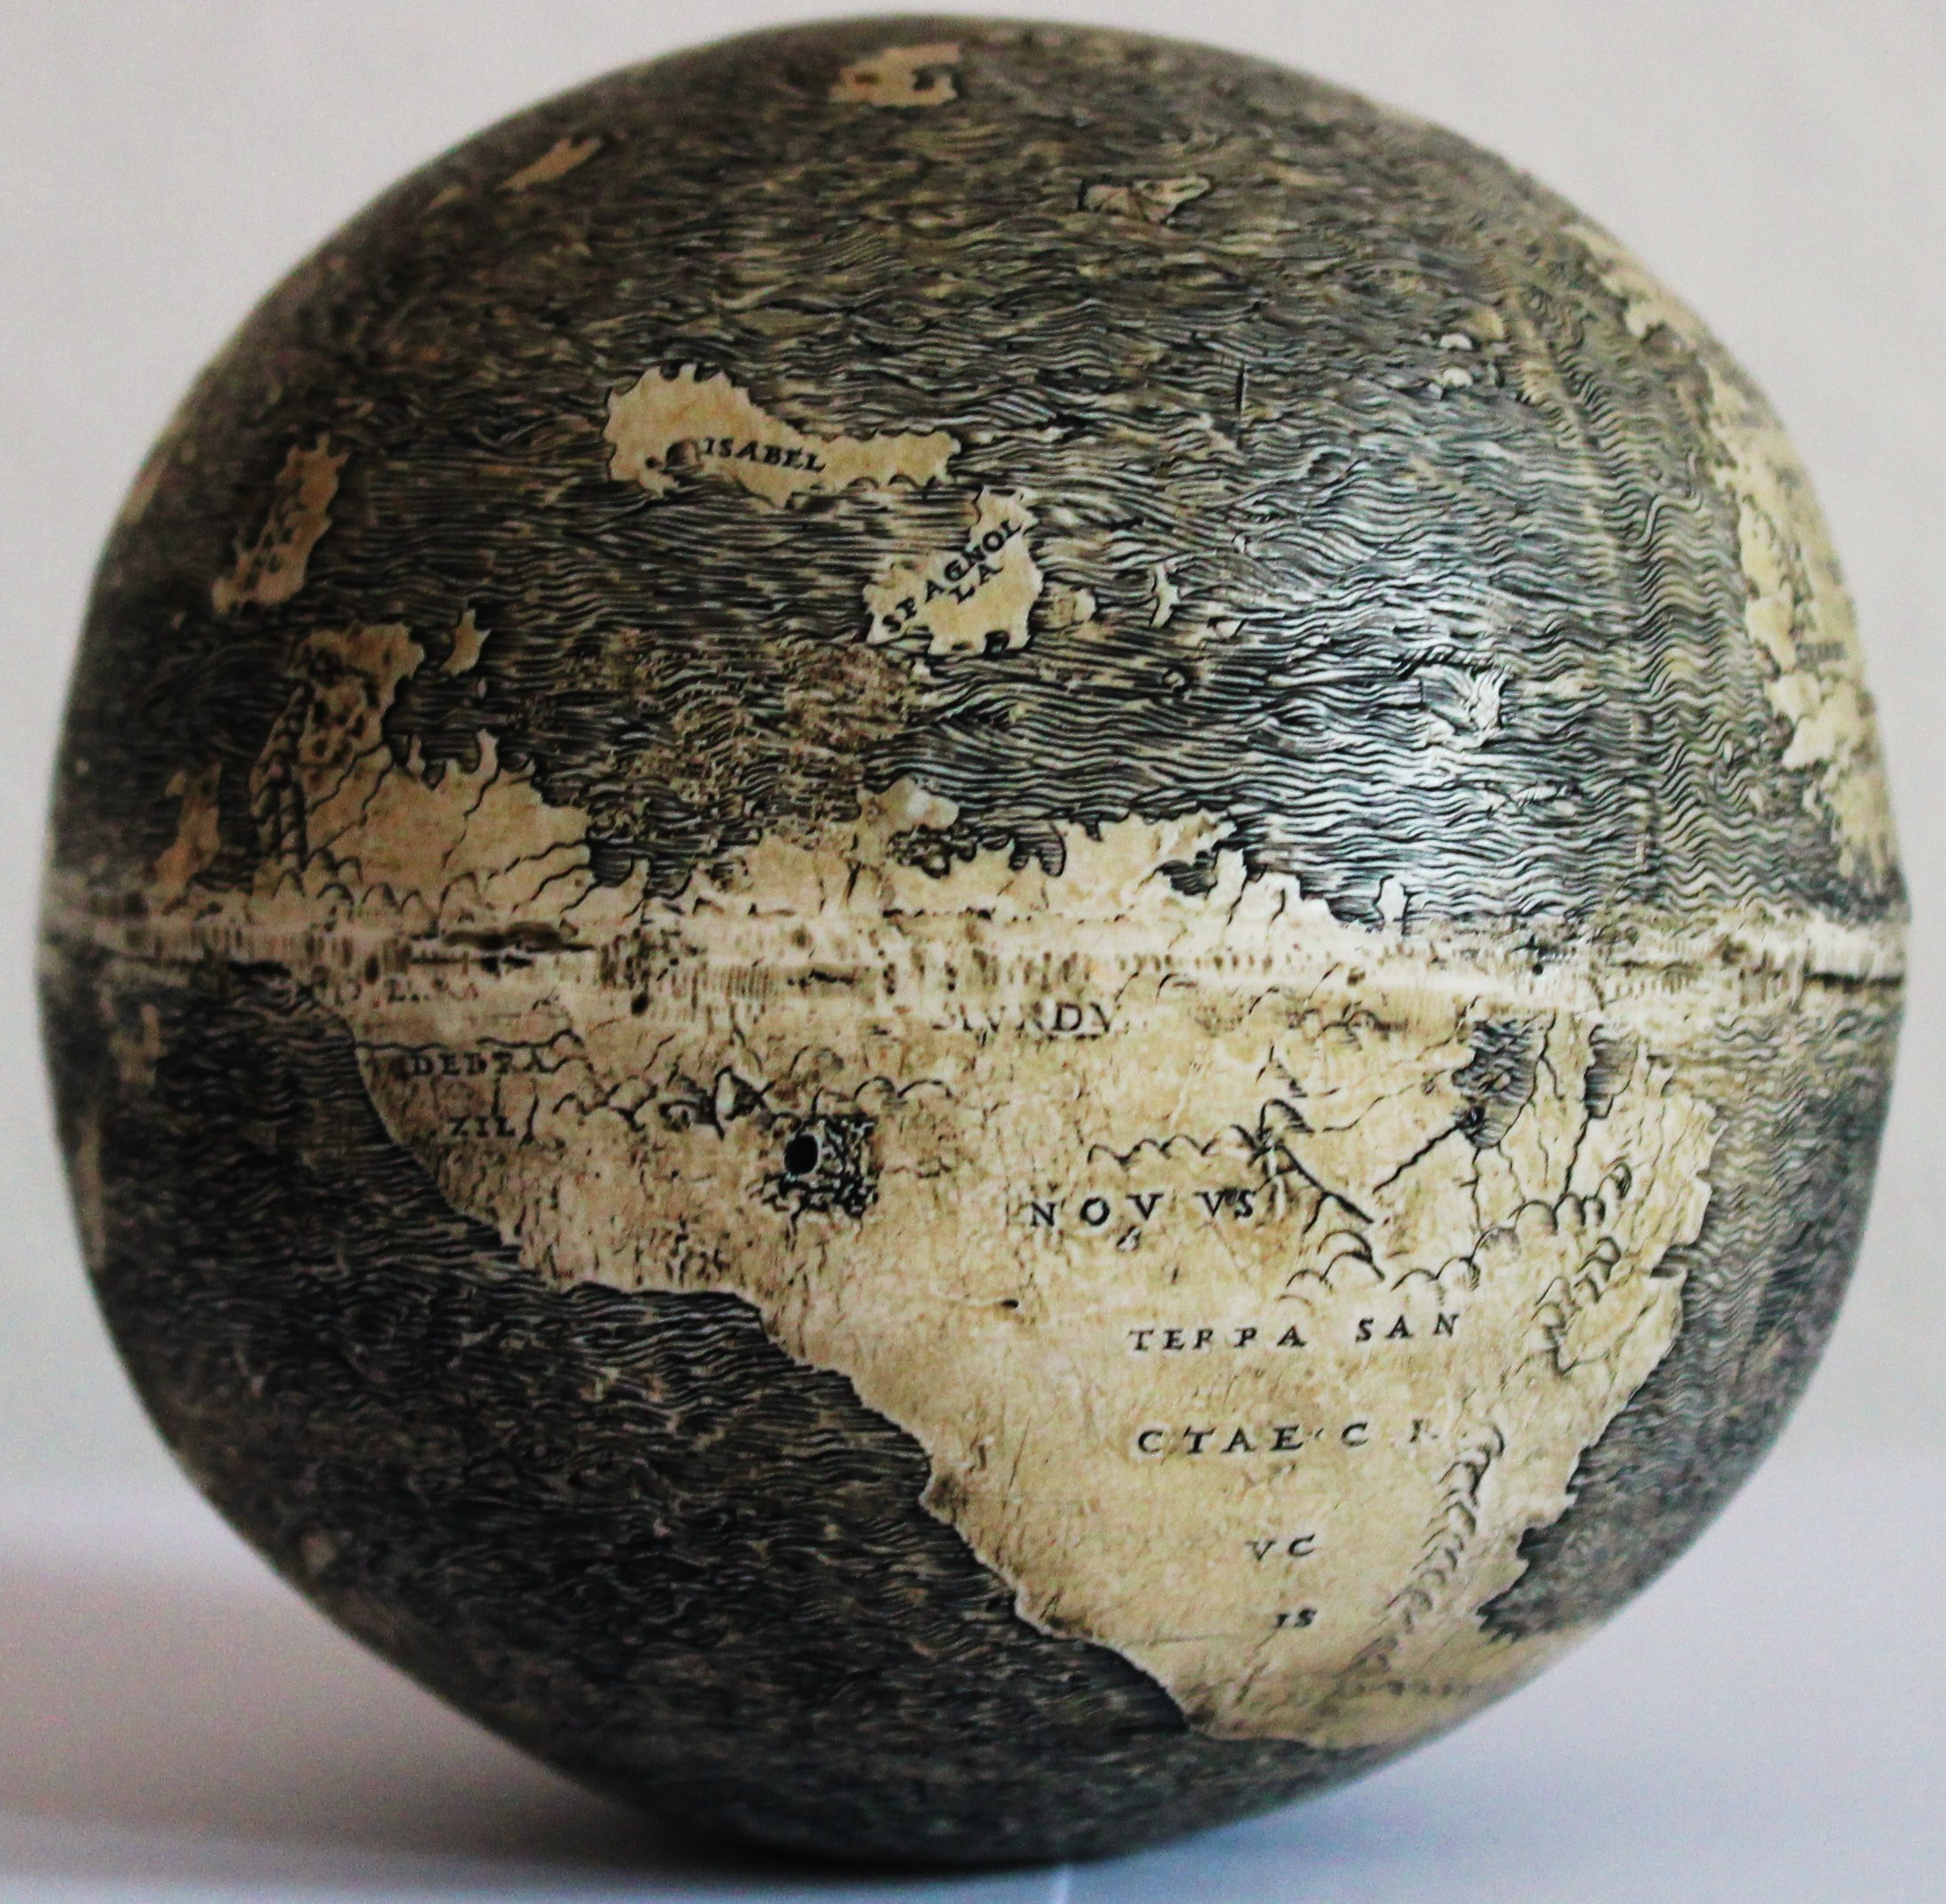 The history blog blog archive ostrich egg globe may be oldest the new world on the ostrich egg globe which bears three names terra de brazil mvndvs novvs and terra sanctae crvcis photo washington map gumiabroncs Images